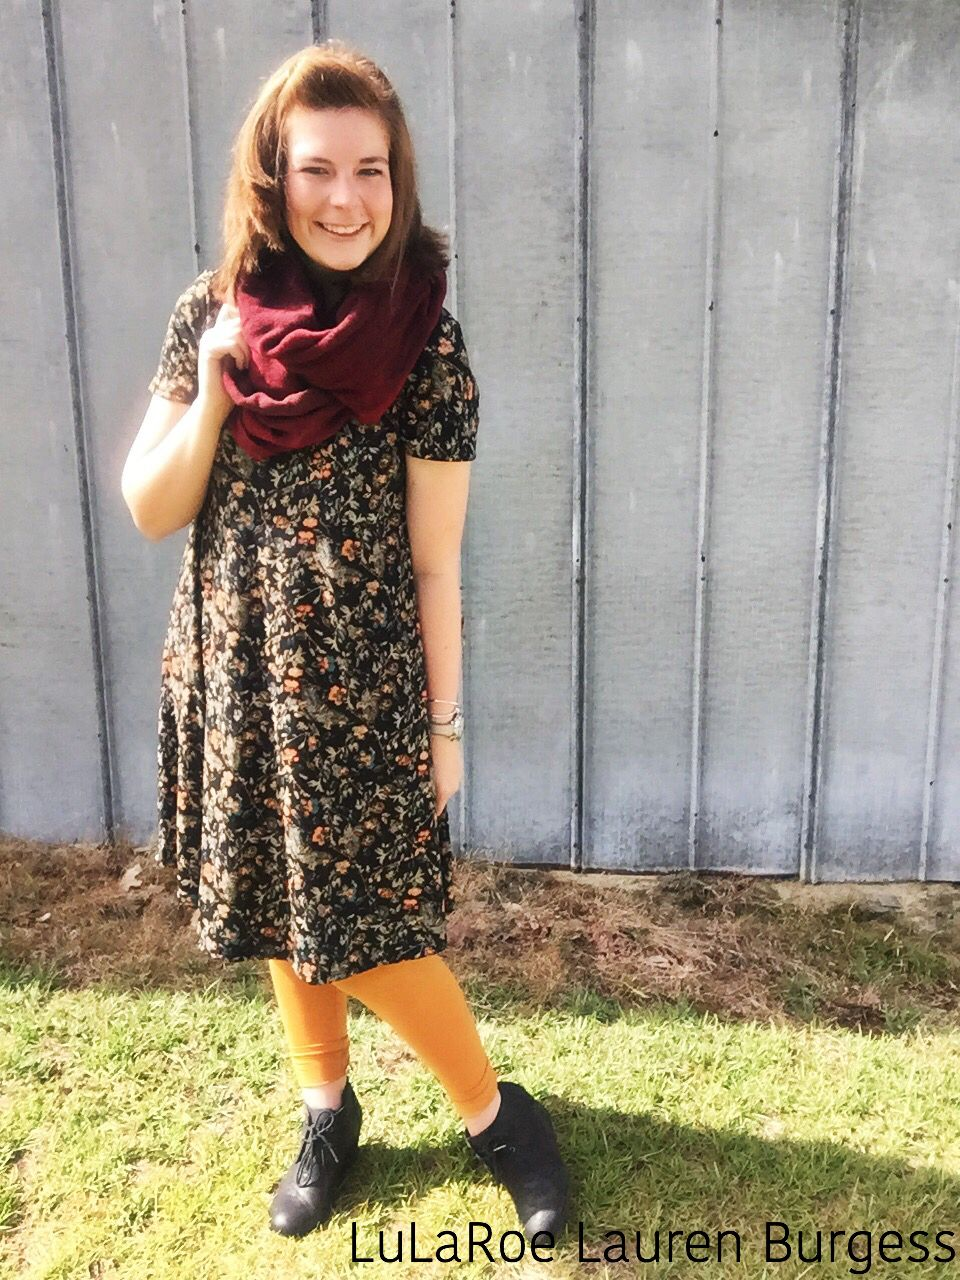 Bring on fall with LuLaRoe Carly dress and leggings!// Facebook: LuLaRoe.